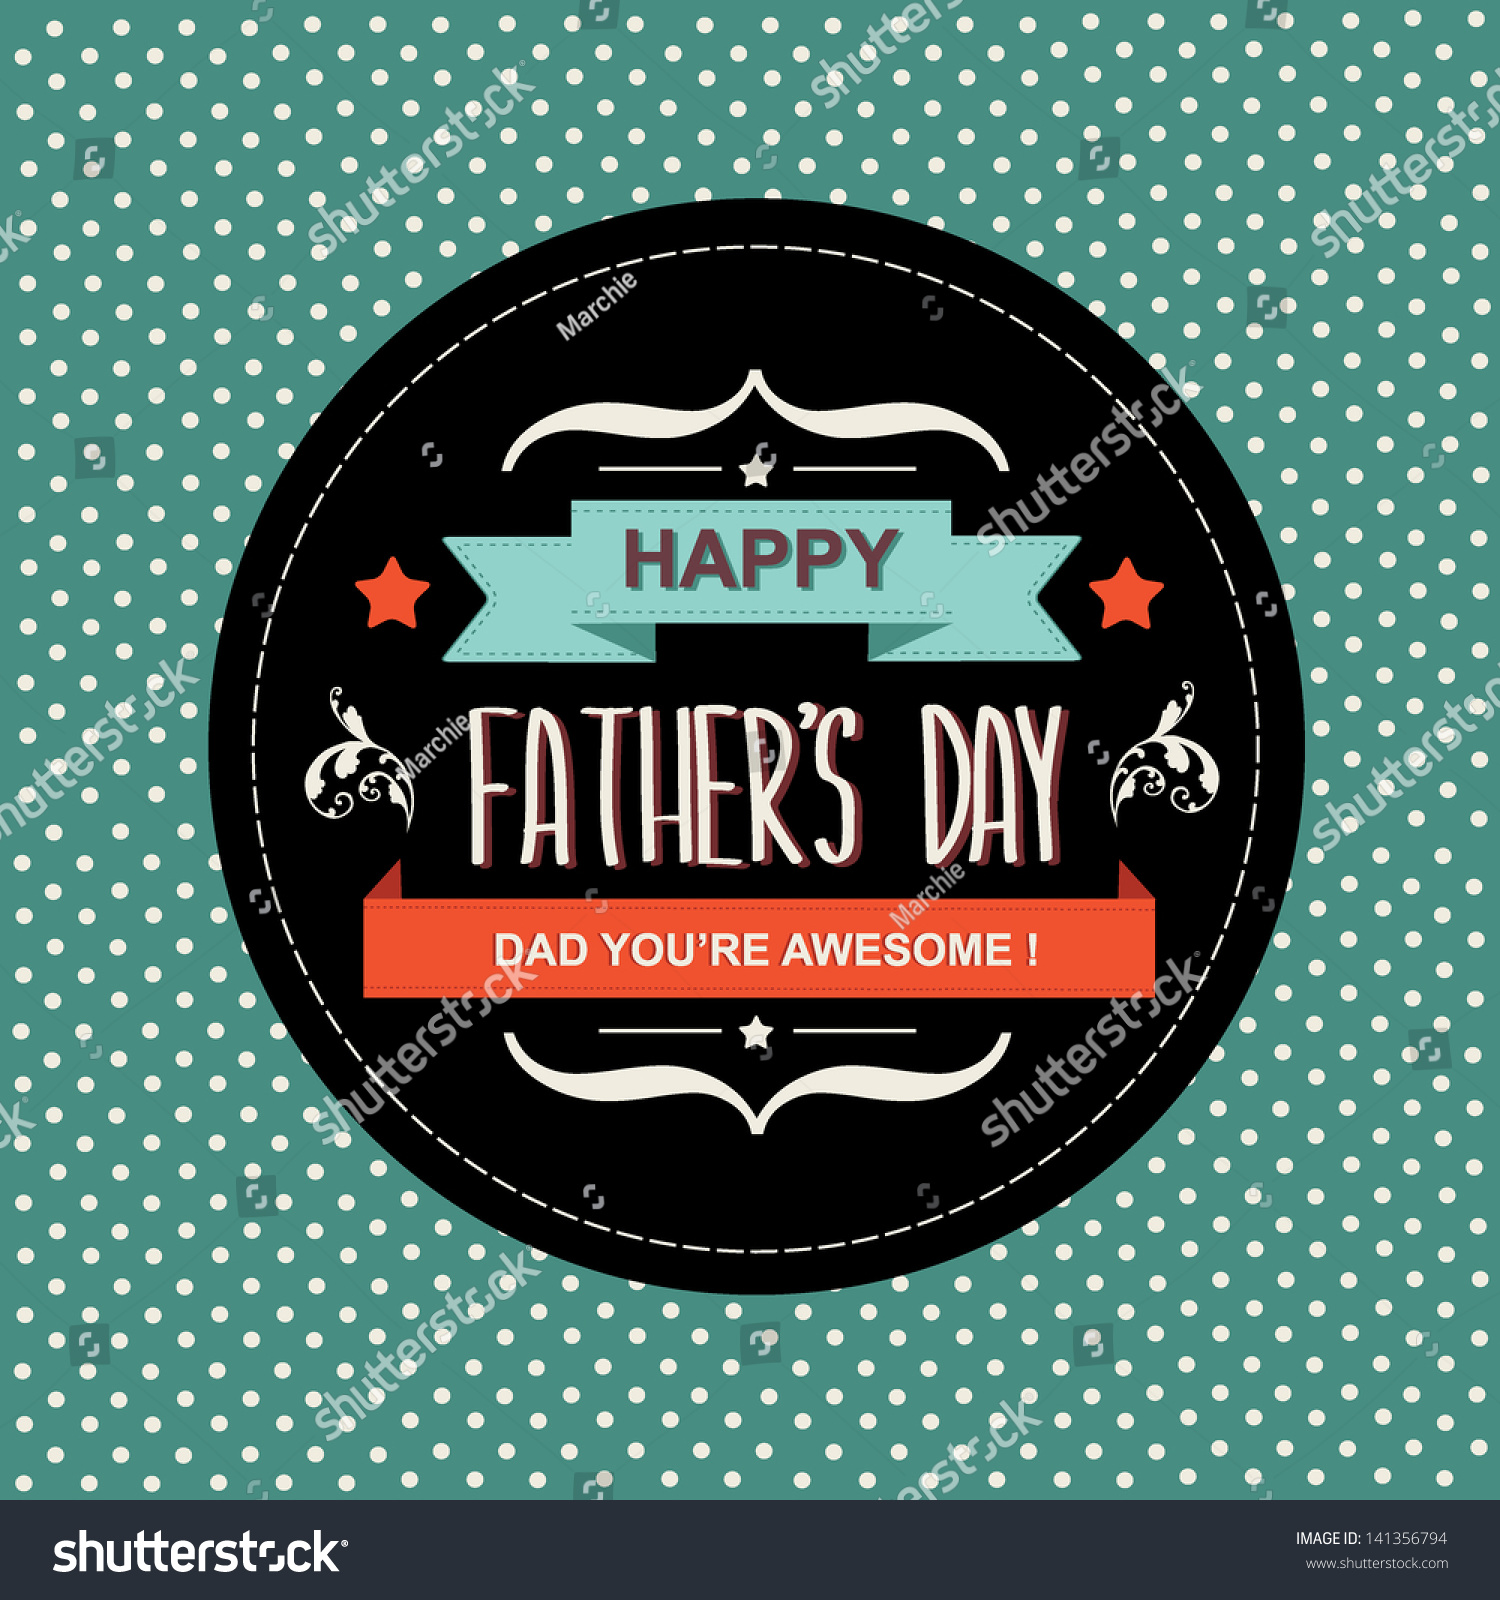 Poster Happy Fathers Daytypographyvector Illustration Stock Vector ...